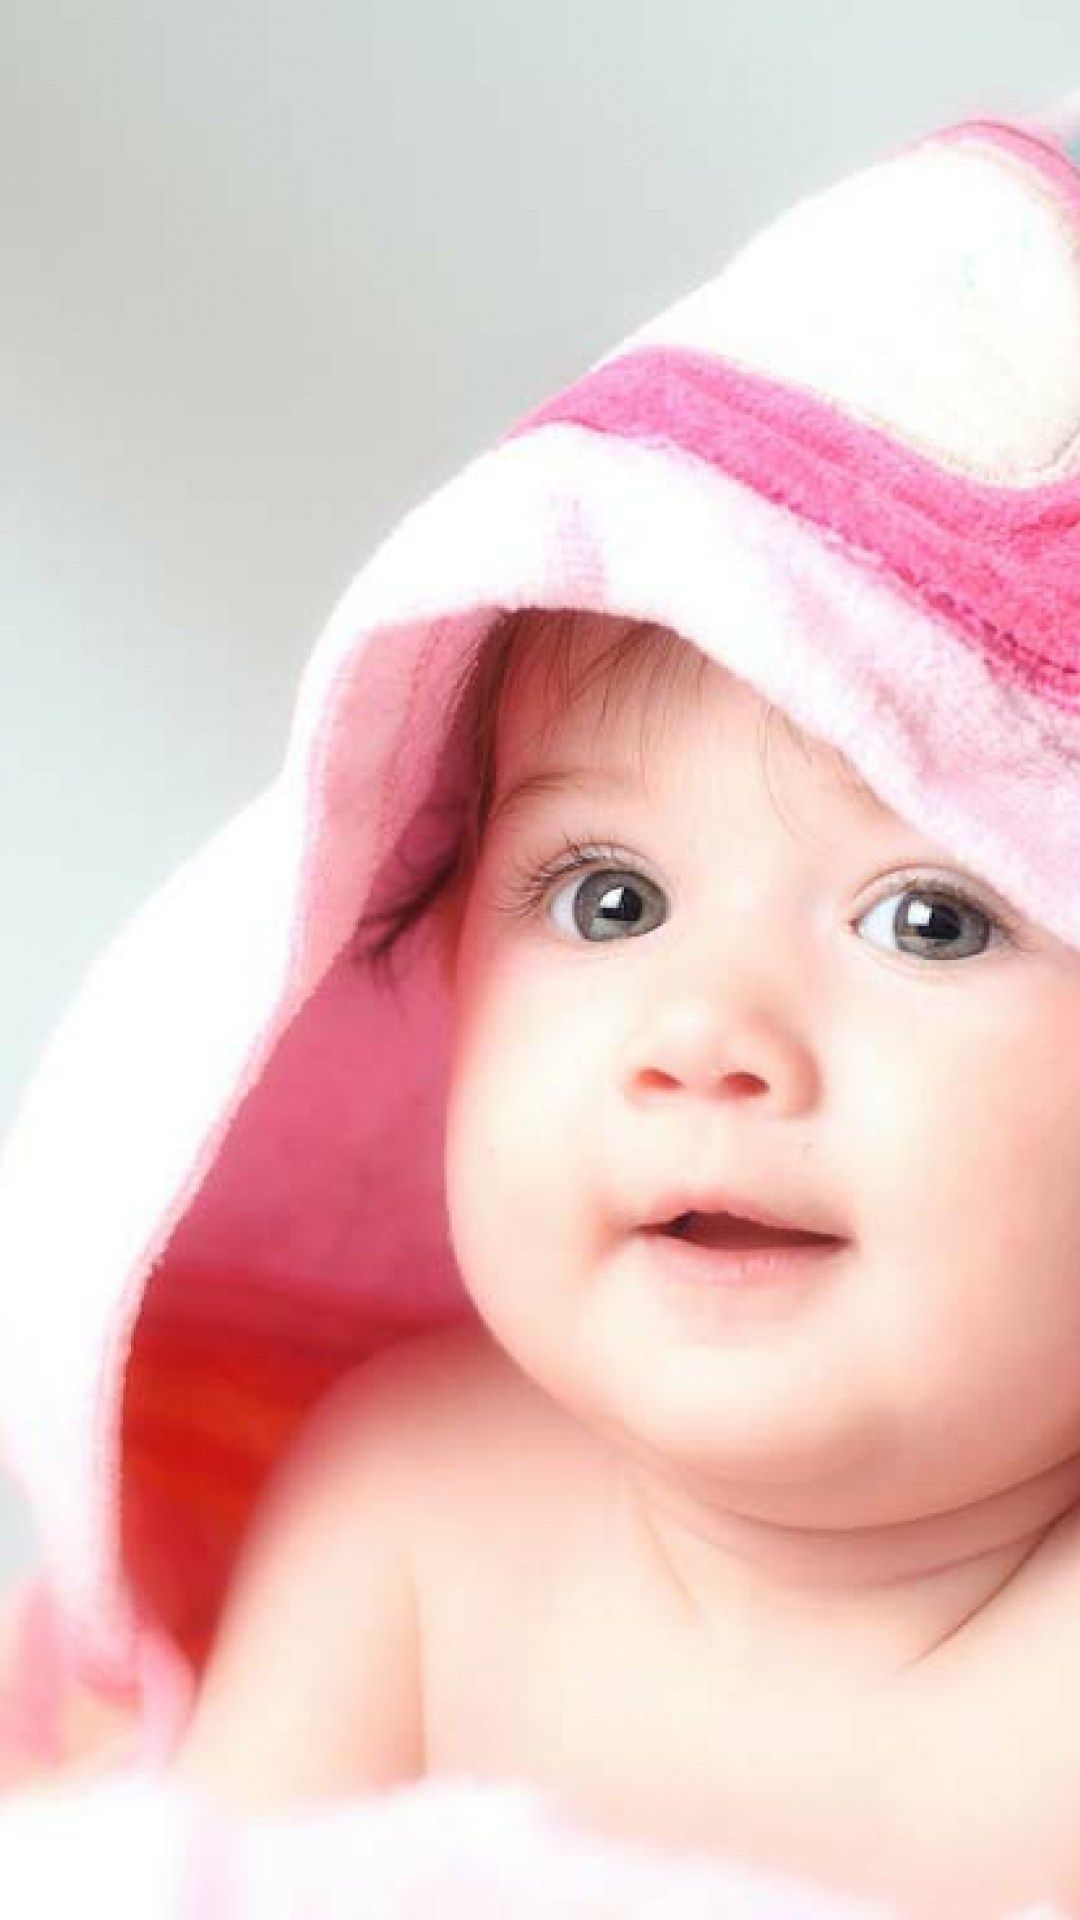 Small Cute Babies Images Download Hd : small, babies, images, download, Indian, Wallpapers, Backgrounds, WallpaperAccess